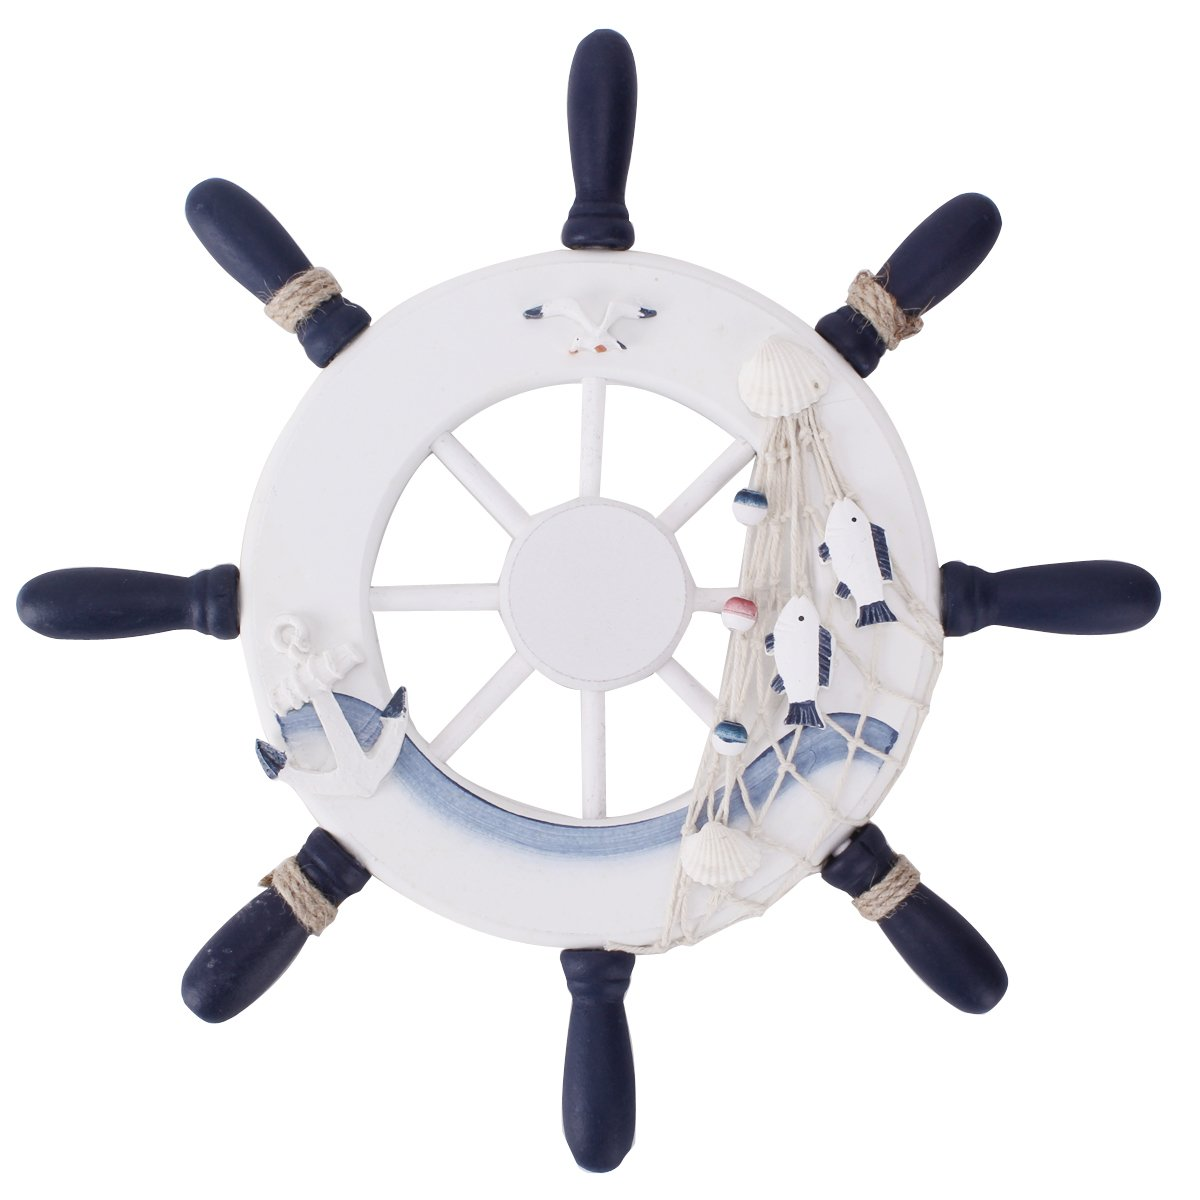 UniqueBella Nautical Mediterranean Style Nordic Wooden Boat Wheel Rudder Helm Colour Blue and White Large